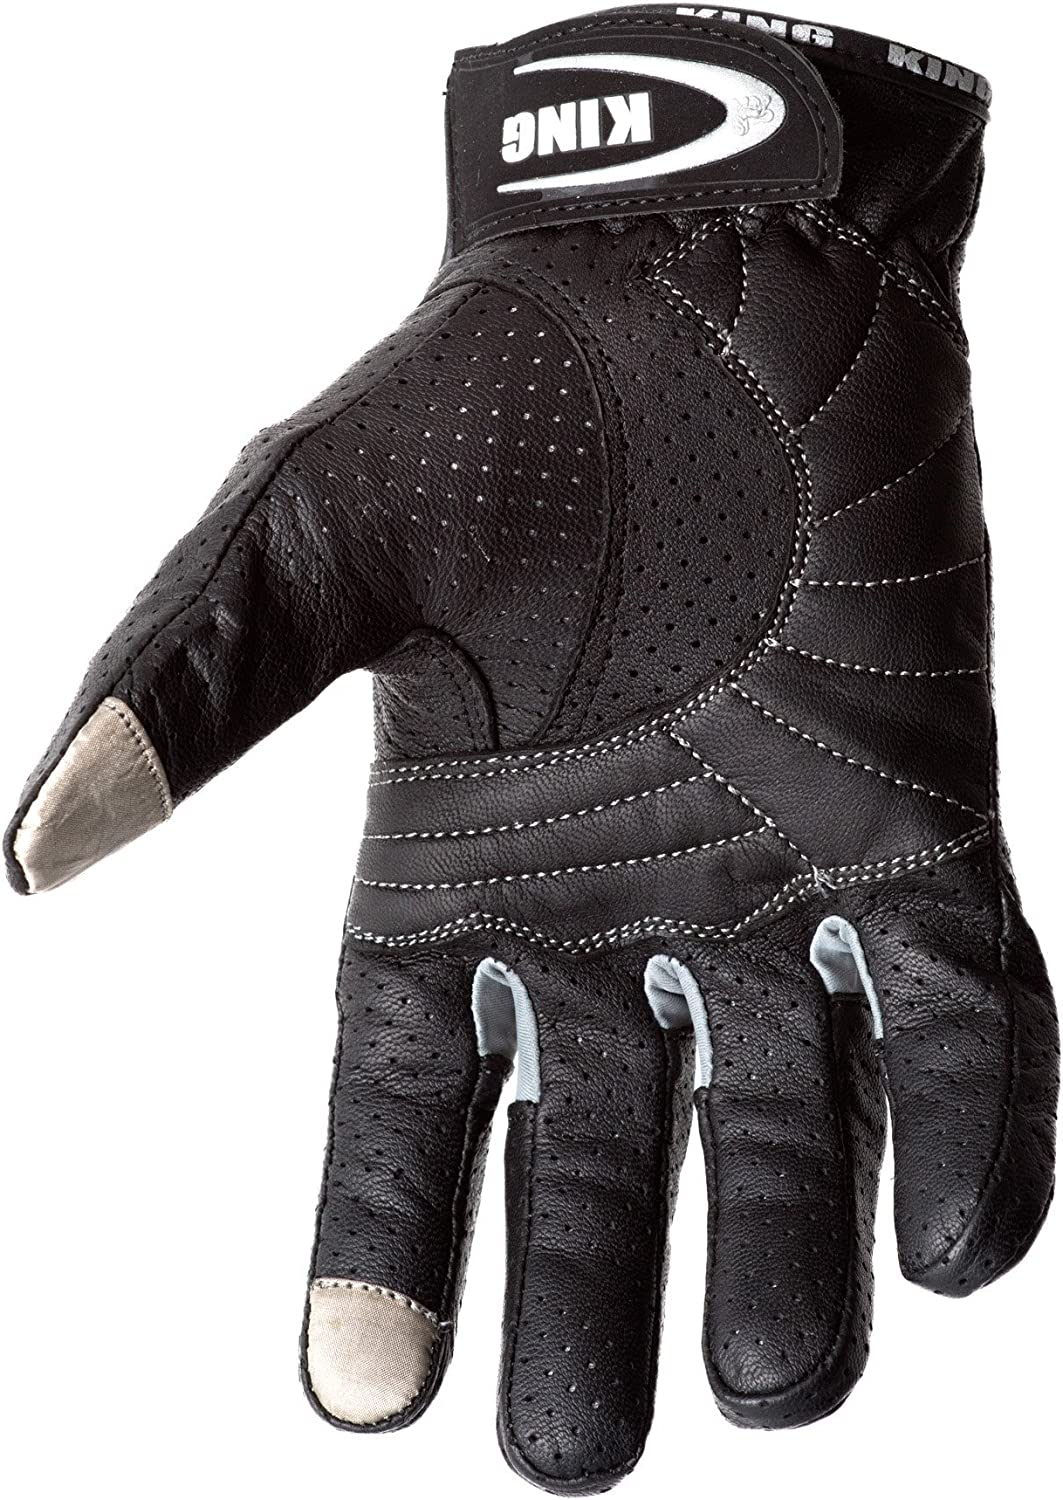 SWIFT Padded All Weather Feature for Men and Women Breathable Moisture Wick Air Flow Technology Between Fingers Motorcycle Biker Gloves Black Premium Leather Touchscreen Black-Sm